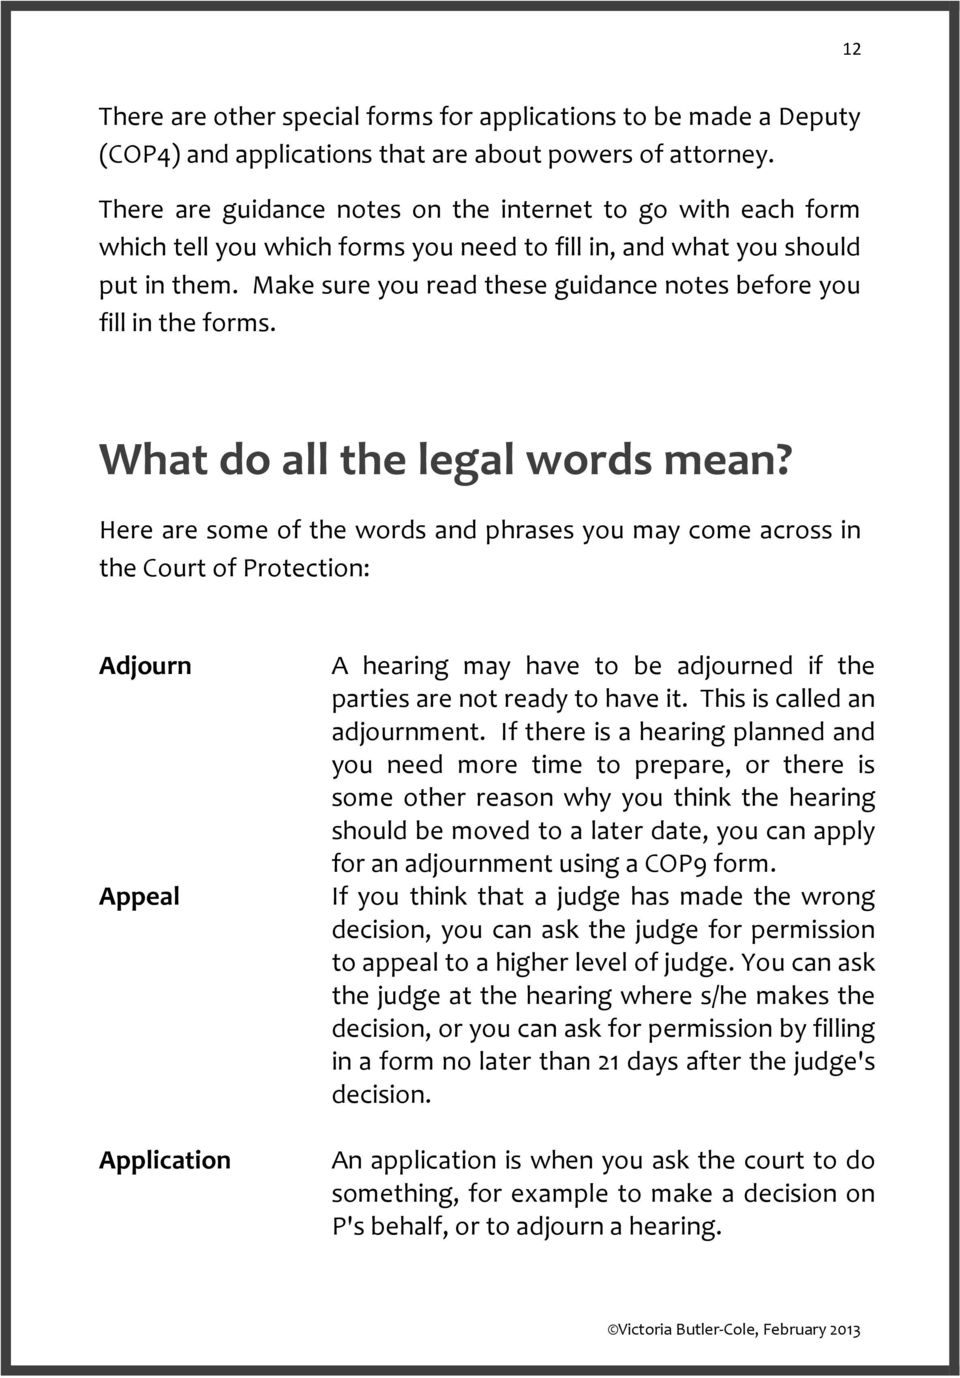 Make sure you read these guidance notes before you fill in the forms. What do all the legal words mean?